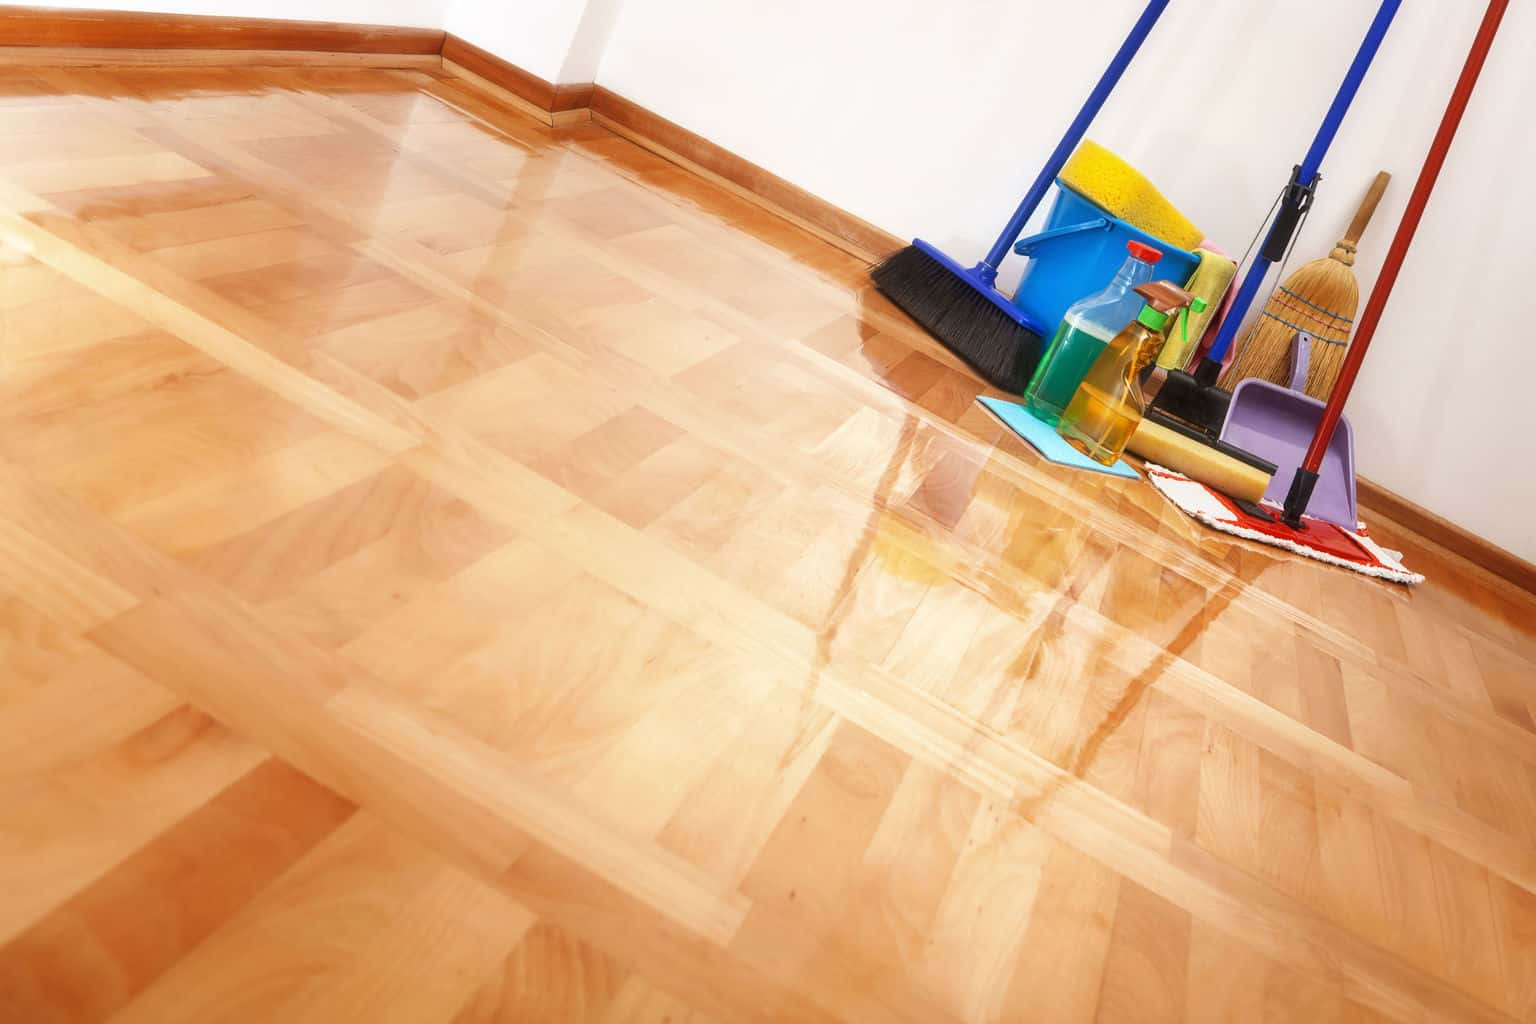 5 Ways To Naturally Clean Hardwood Floors The Flooring Lady